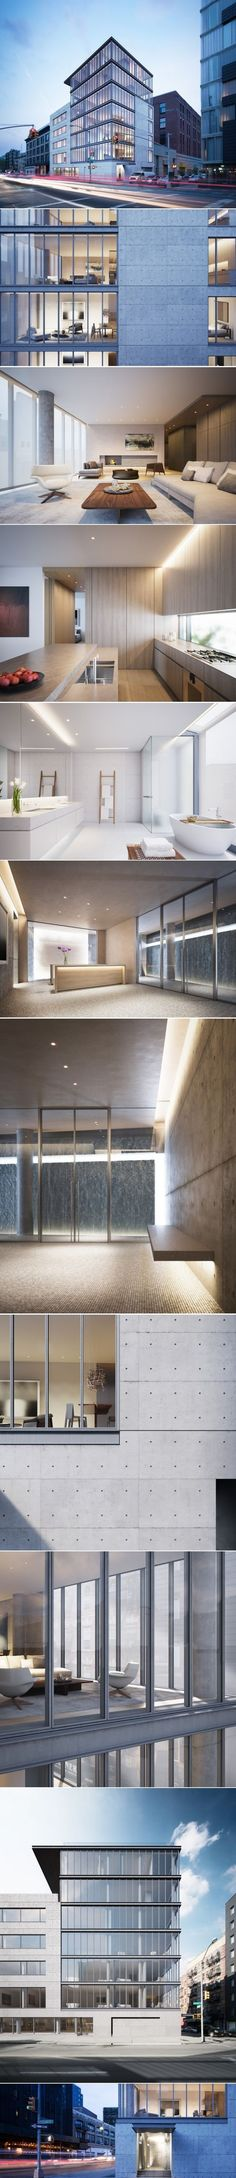 Tadao Andou0027s First Residential Project in New